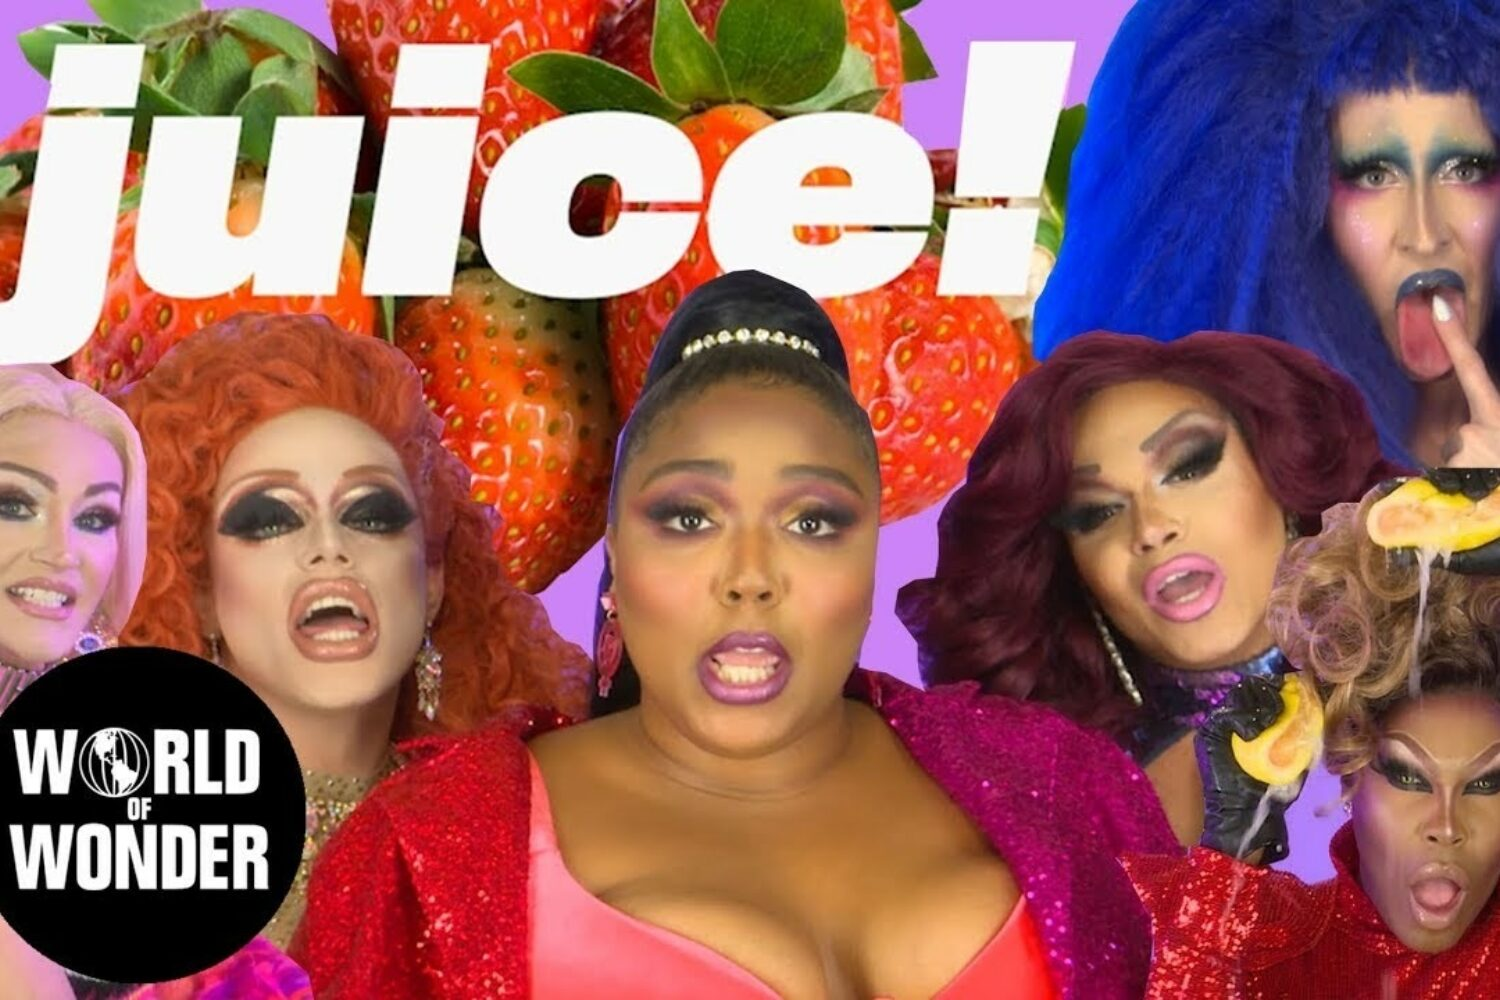 Stars of Ru Paul's Drag Race join Lizzo in her 'Juice' video